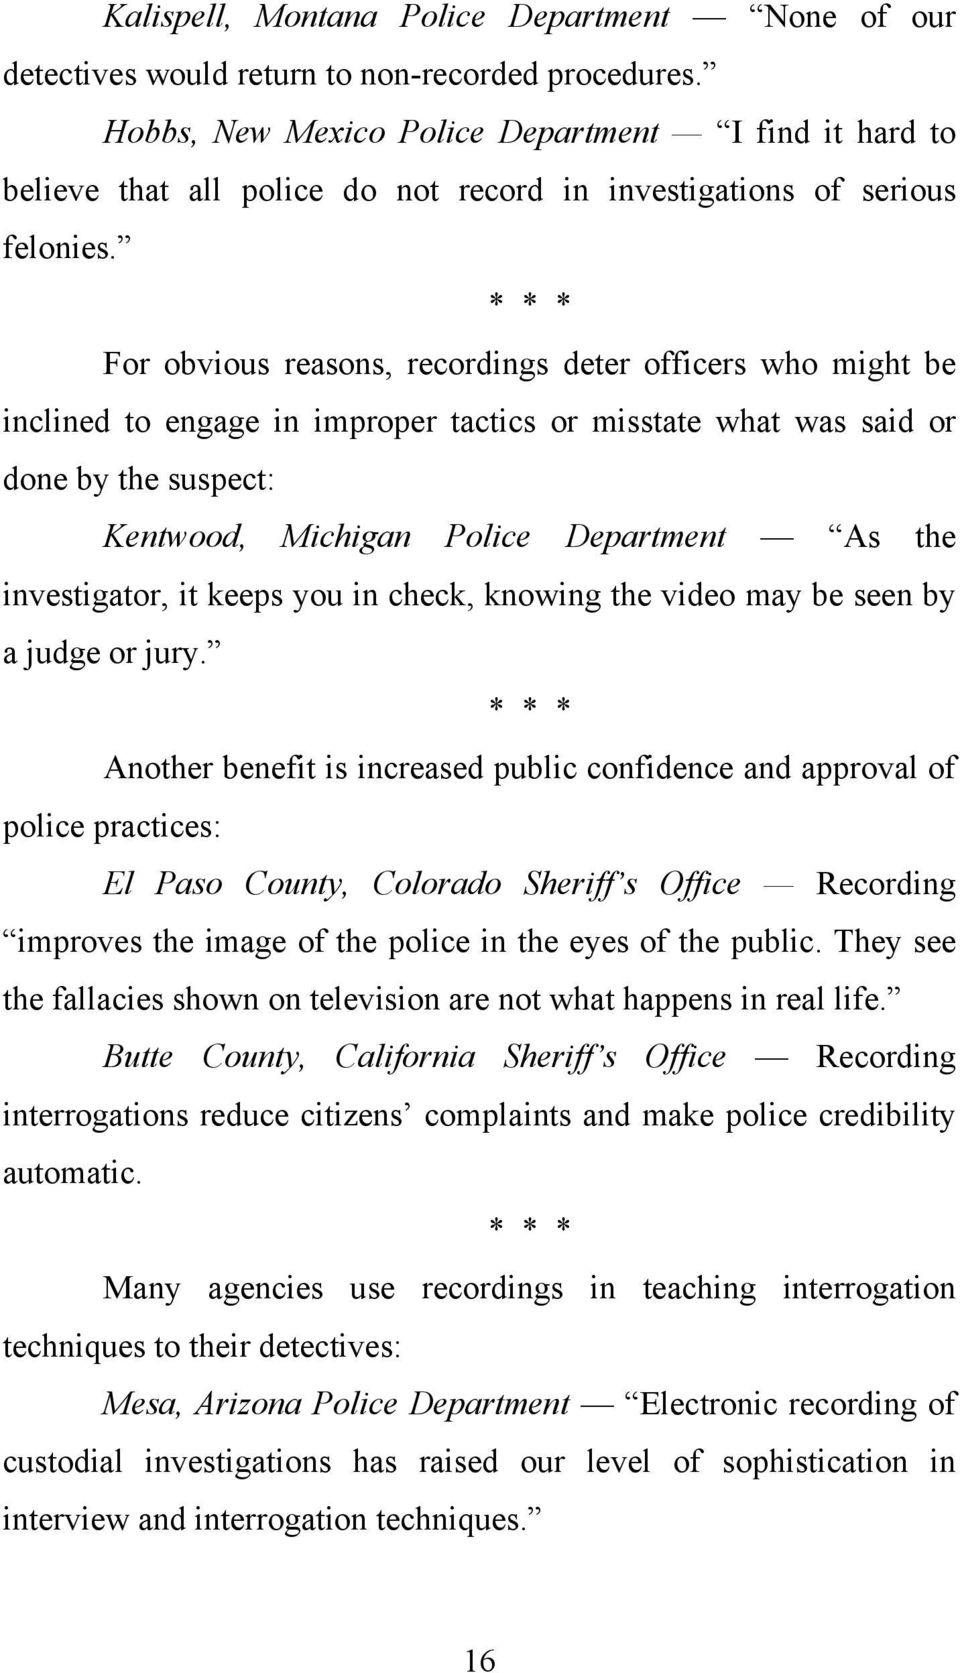 * * * For obvious reasons, recordings deter officers who might be inclined to engage in improper tactics or misstate what was said or done by the suspect: Kentwood, Michigan Police Department As the